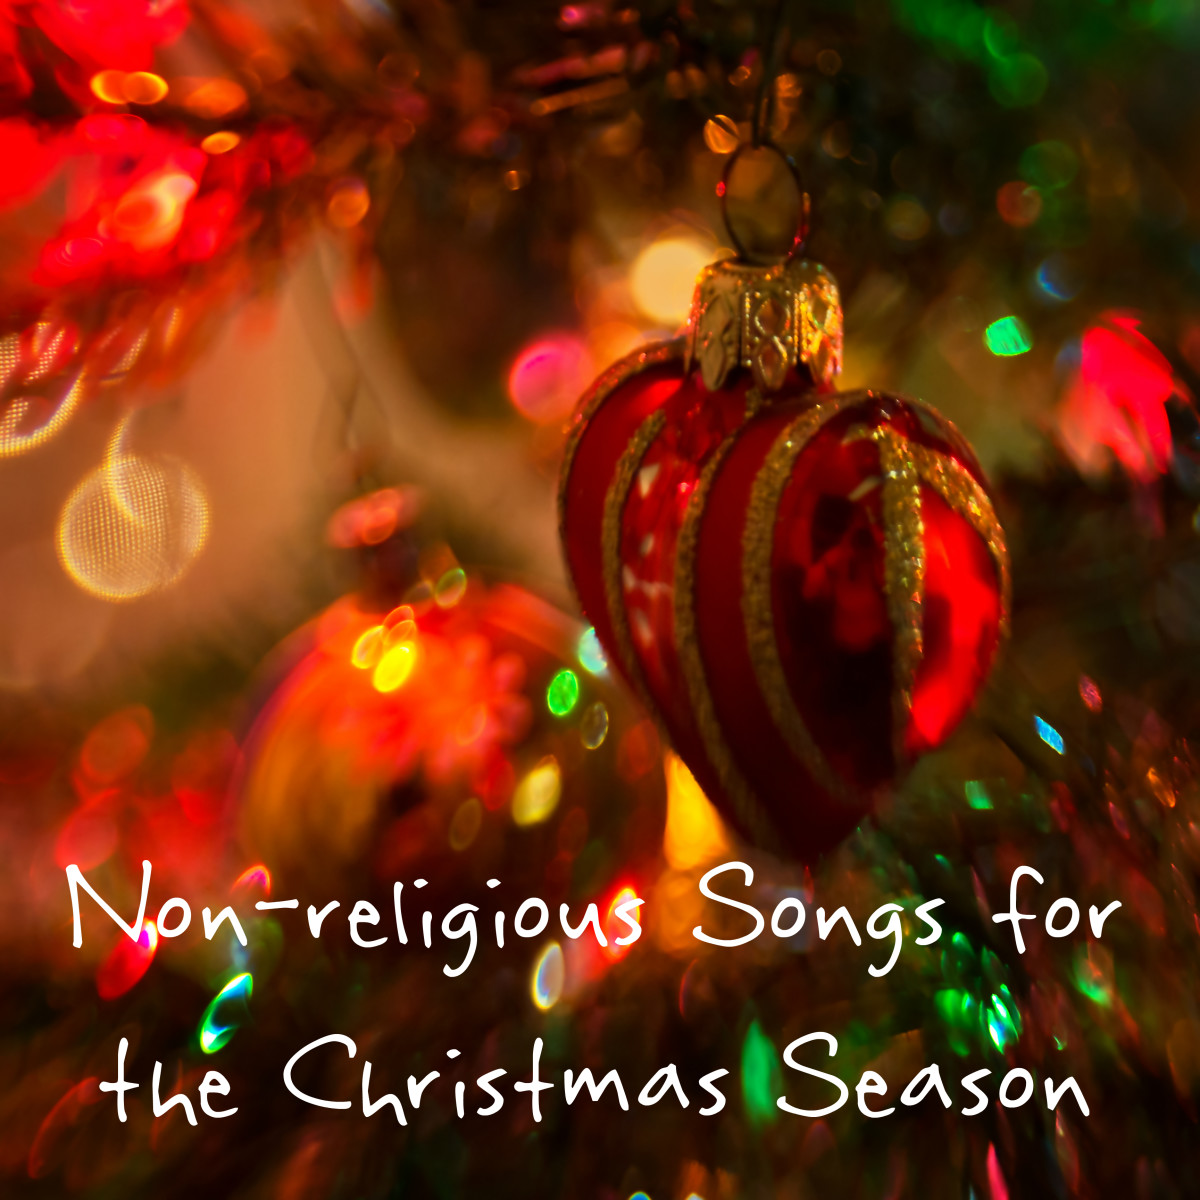 125 Non-Religious Christmas Songs for Your Holiday Playlist